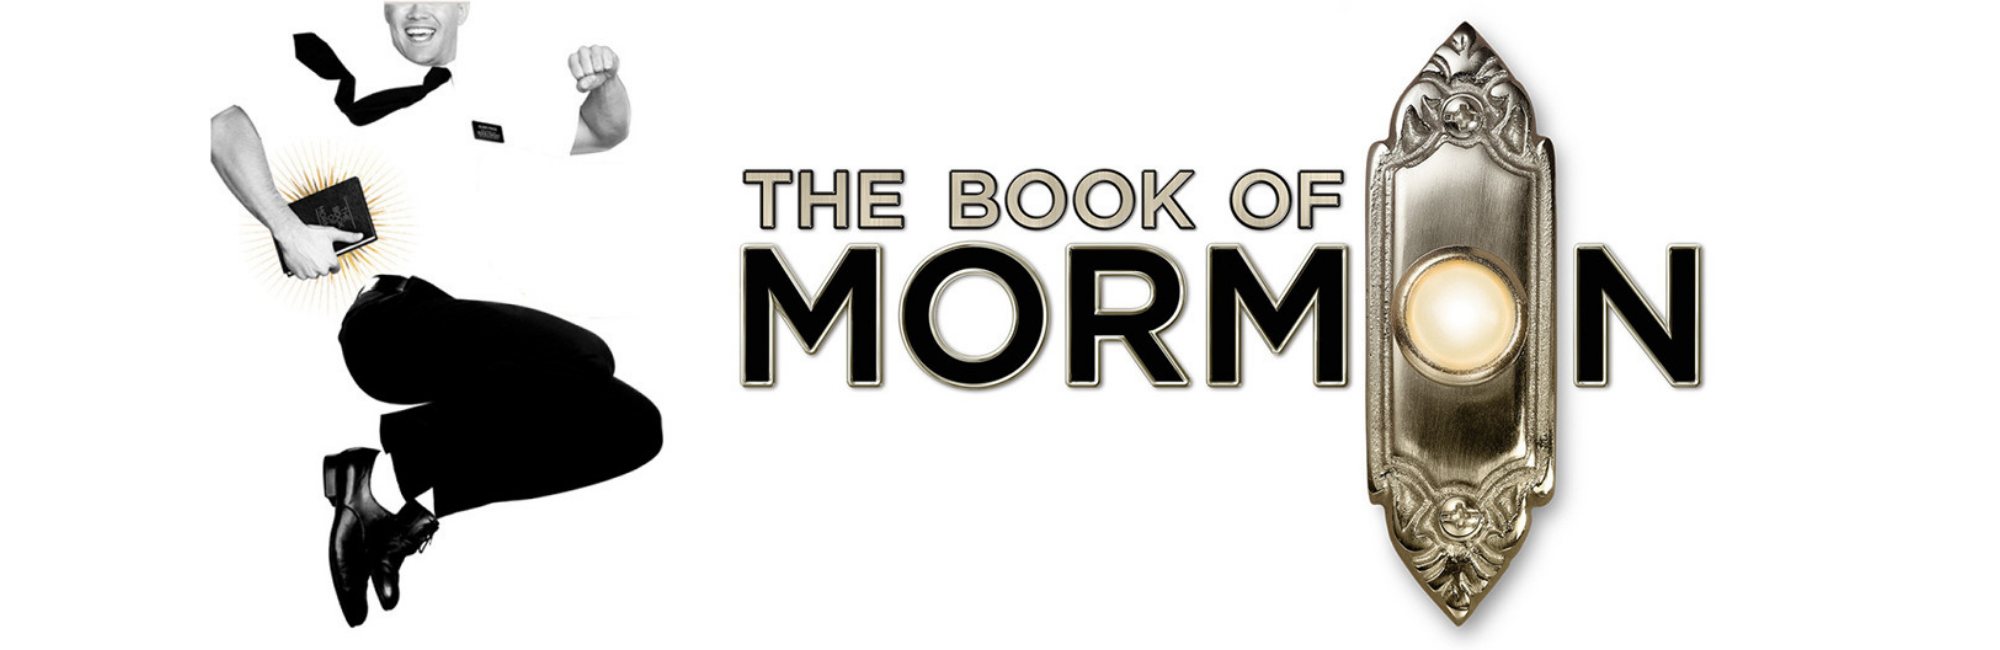 The book of Mormon, pre-theatre packages at Balthazar, London